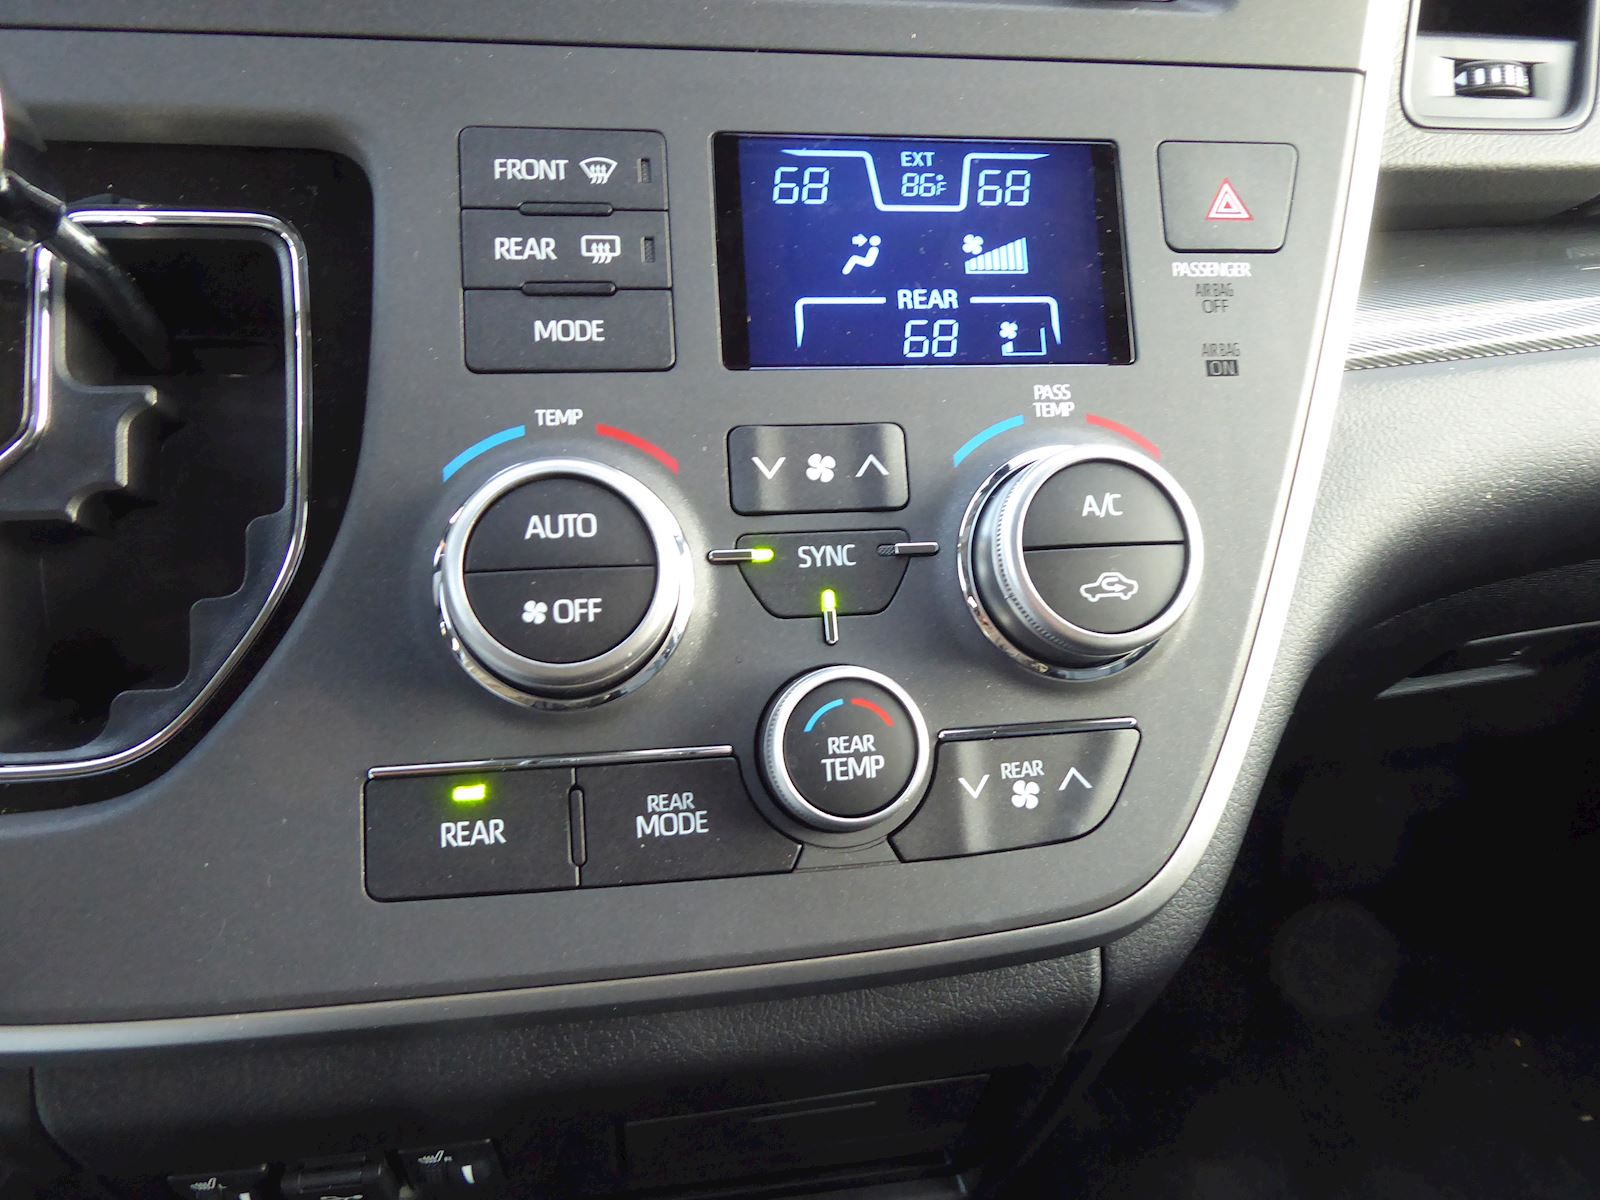 2020 Toyota Sienna climate control system